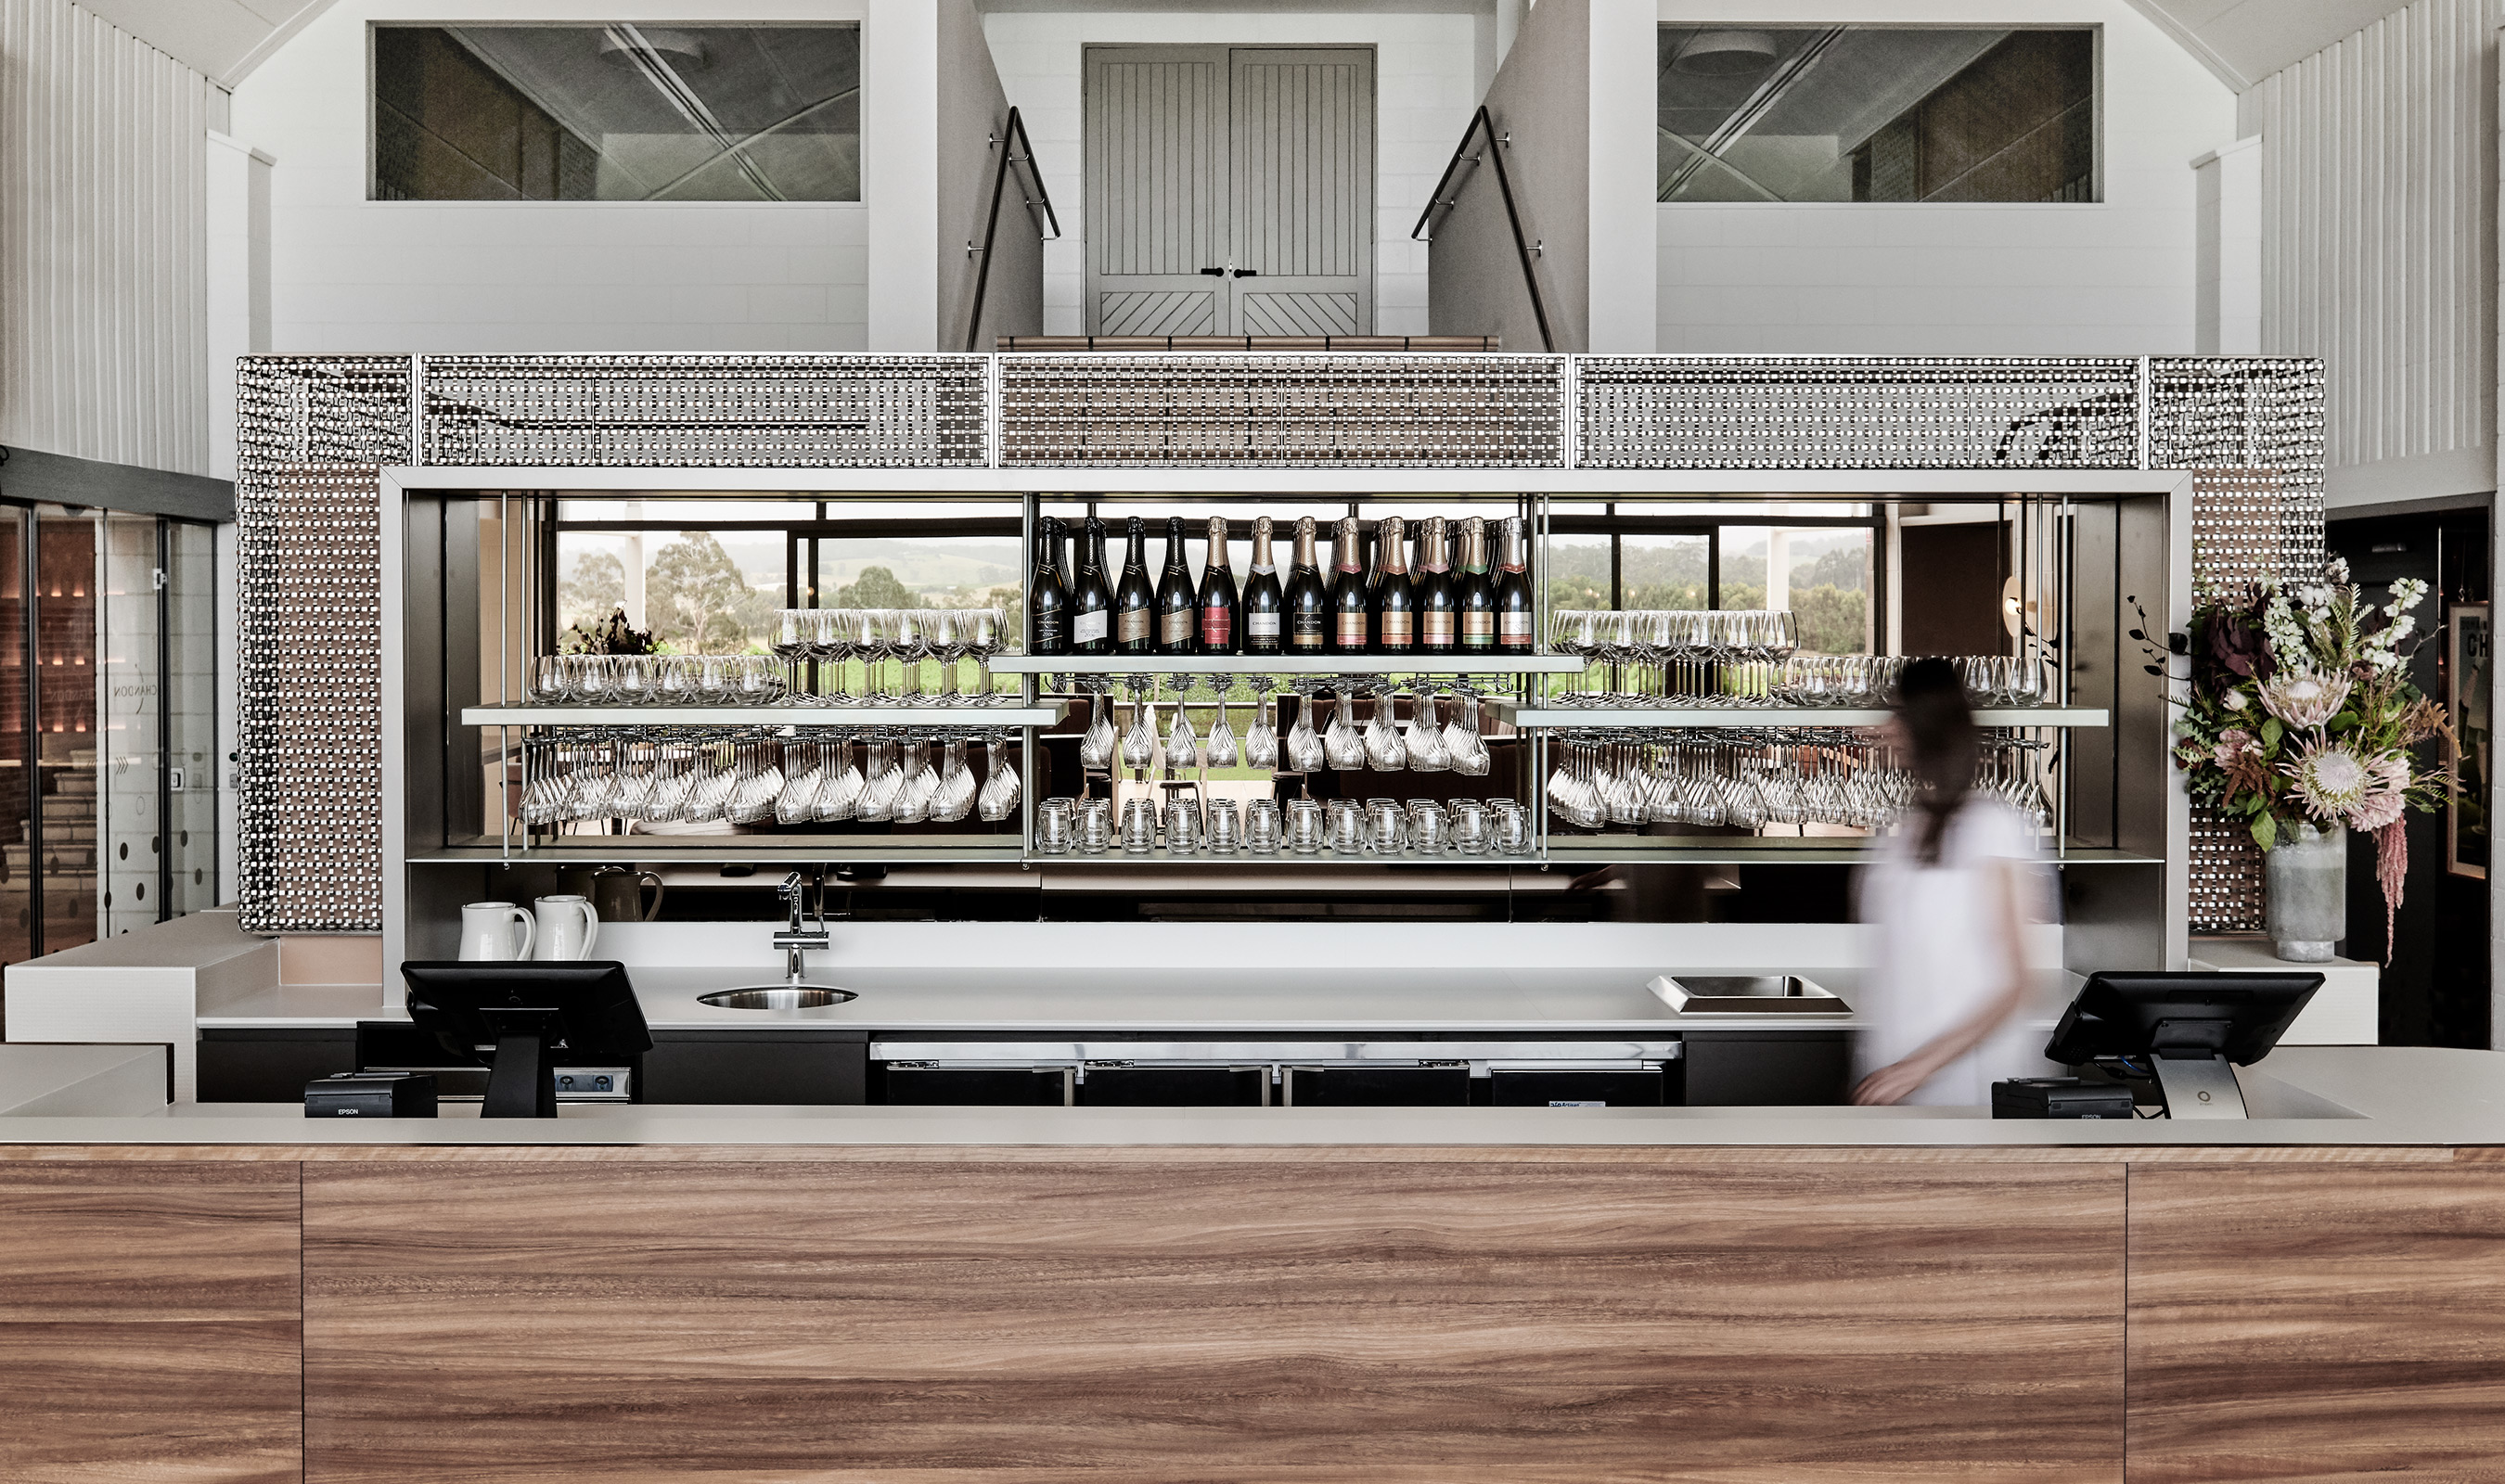 S-15 is a large flat wire wave used within the Domaine Chandon Restaurant as a clean and modern accent to it's beautiful interior.